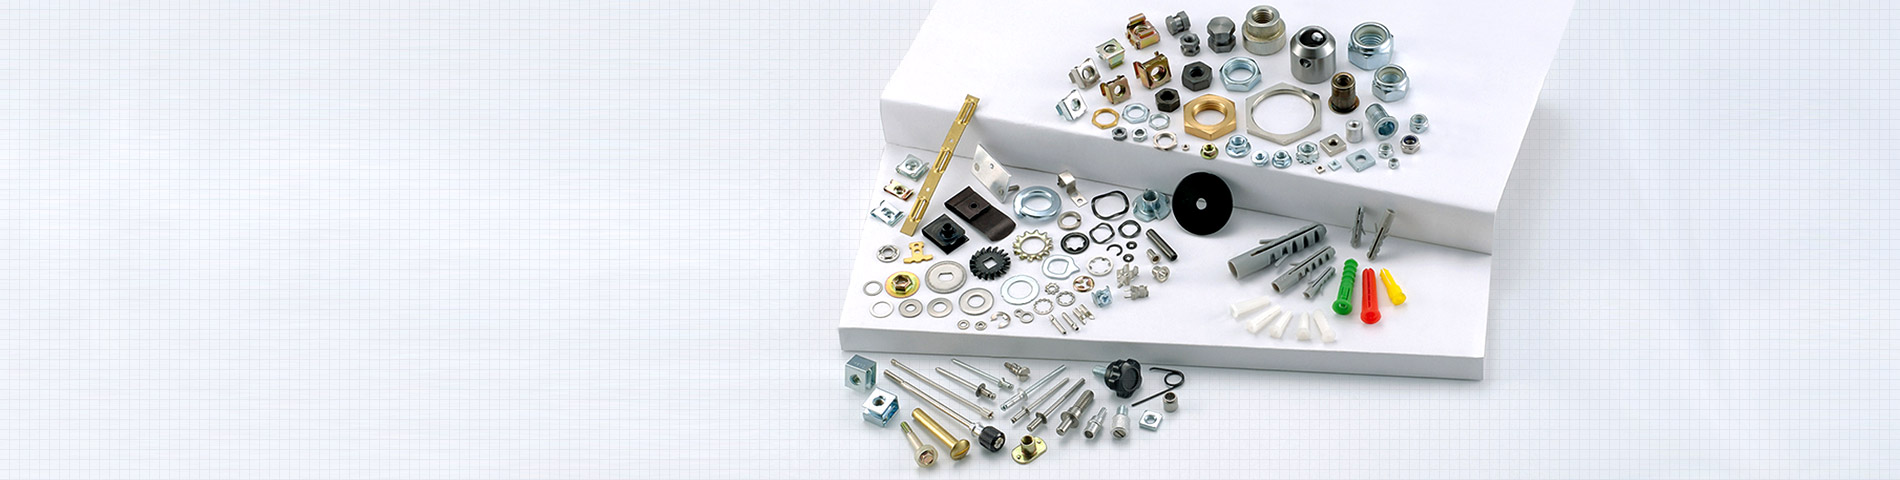 From Small Fasteners to Whole World